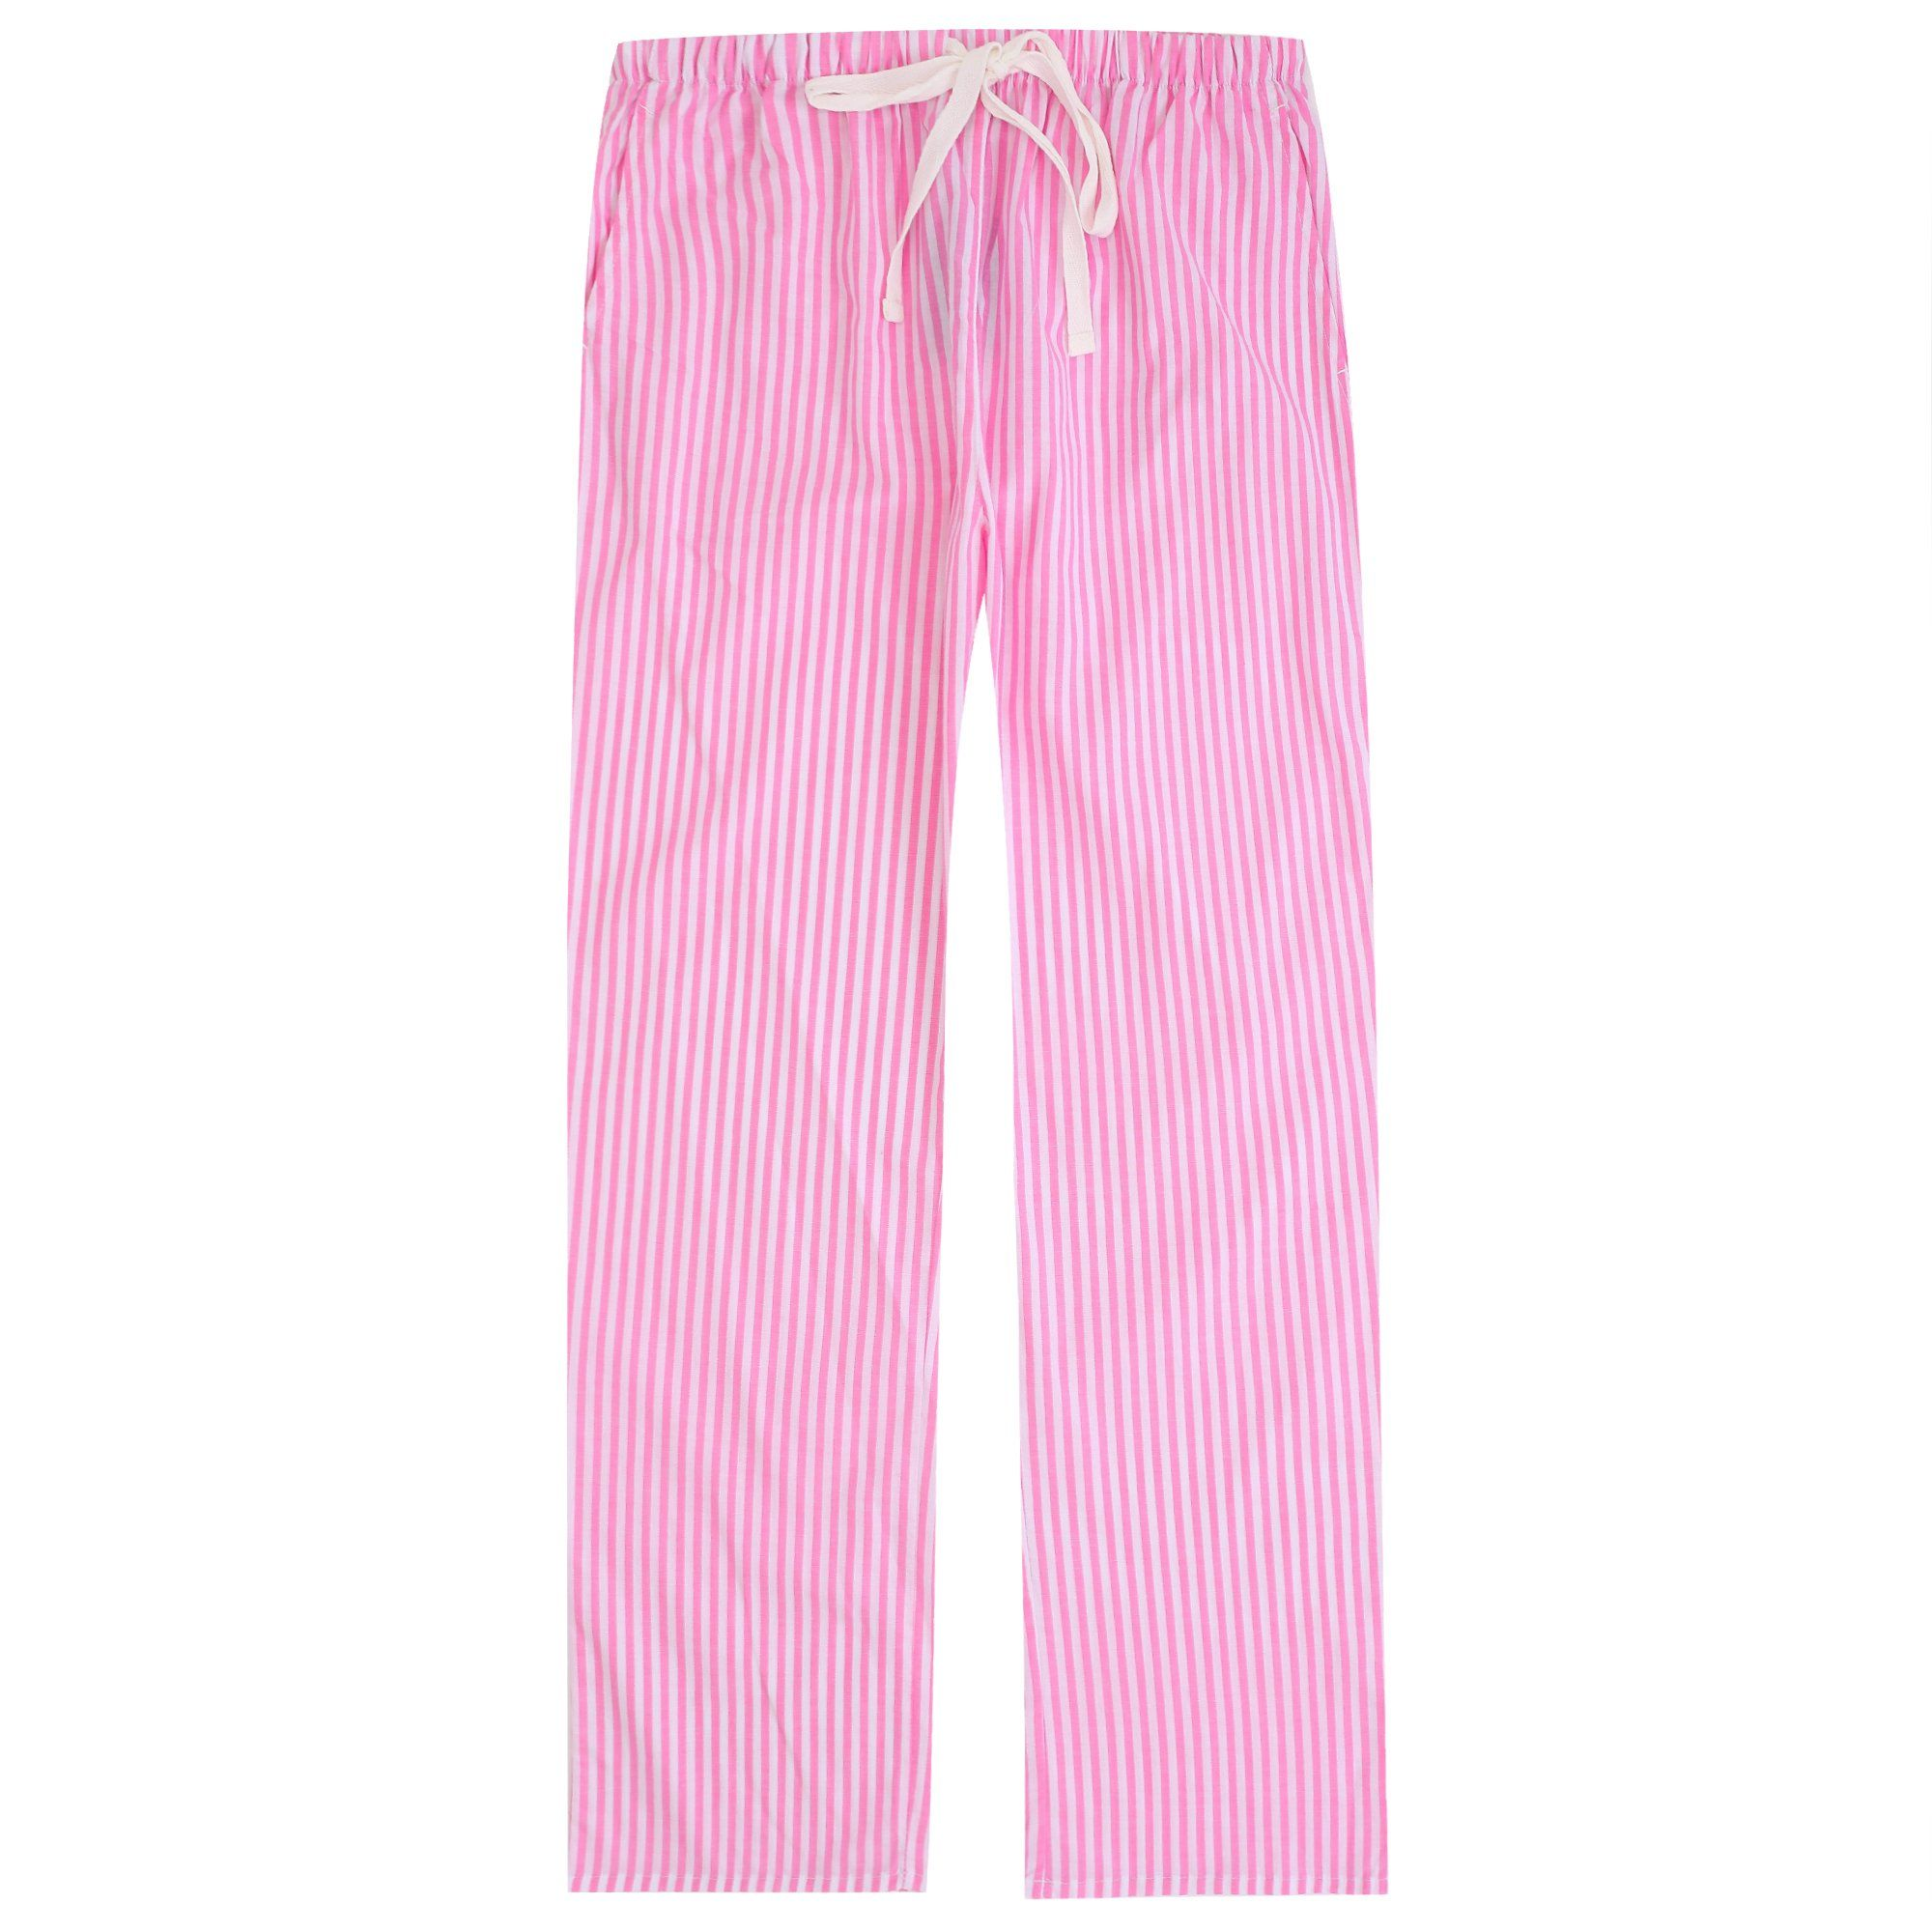 Pajama Pants for Women - 100% Cotton Lounge Pants Women PJ Pants